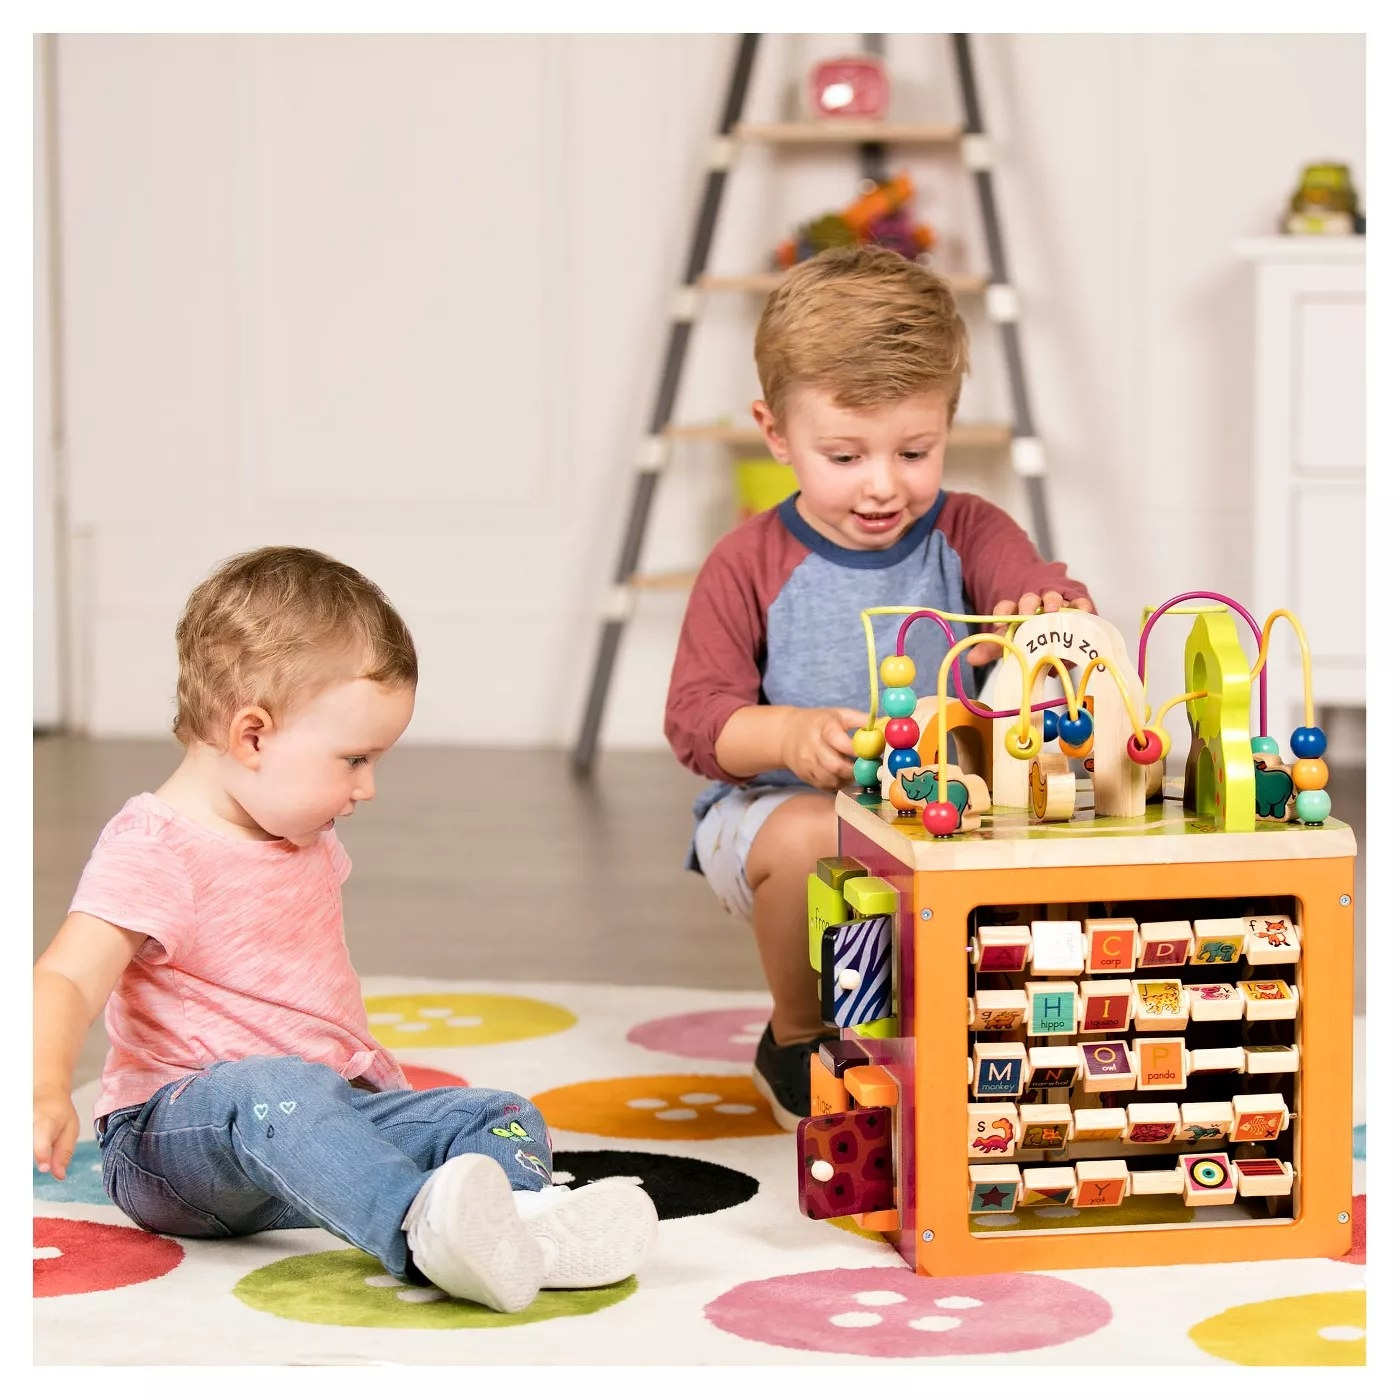 Two children playing with a cube that has different activities built into each side